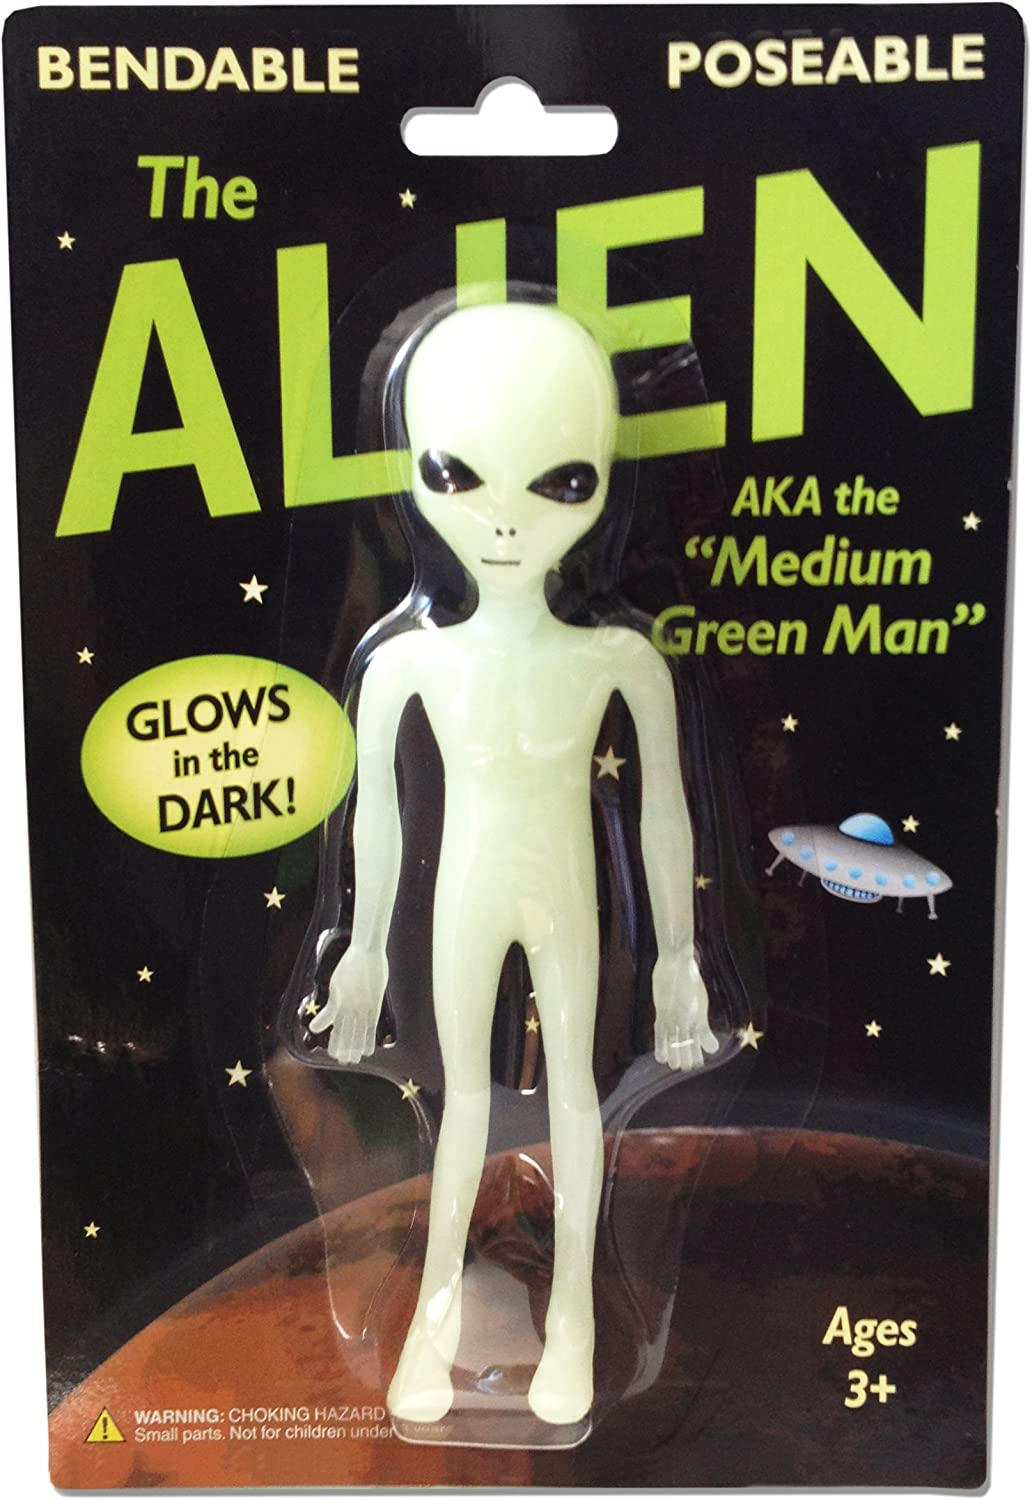 Alien Glow-In-The-Dark Bendable Action Figure Toy Game Play Gift New